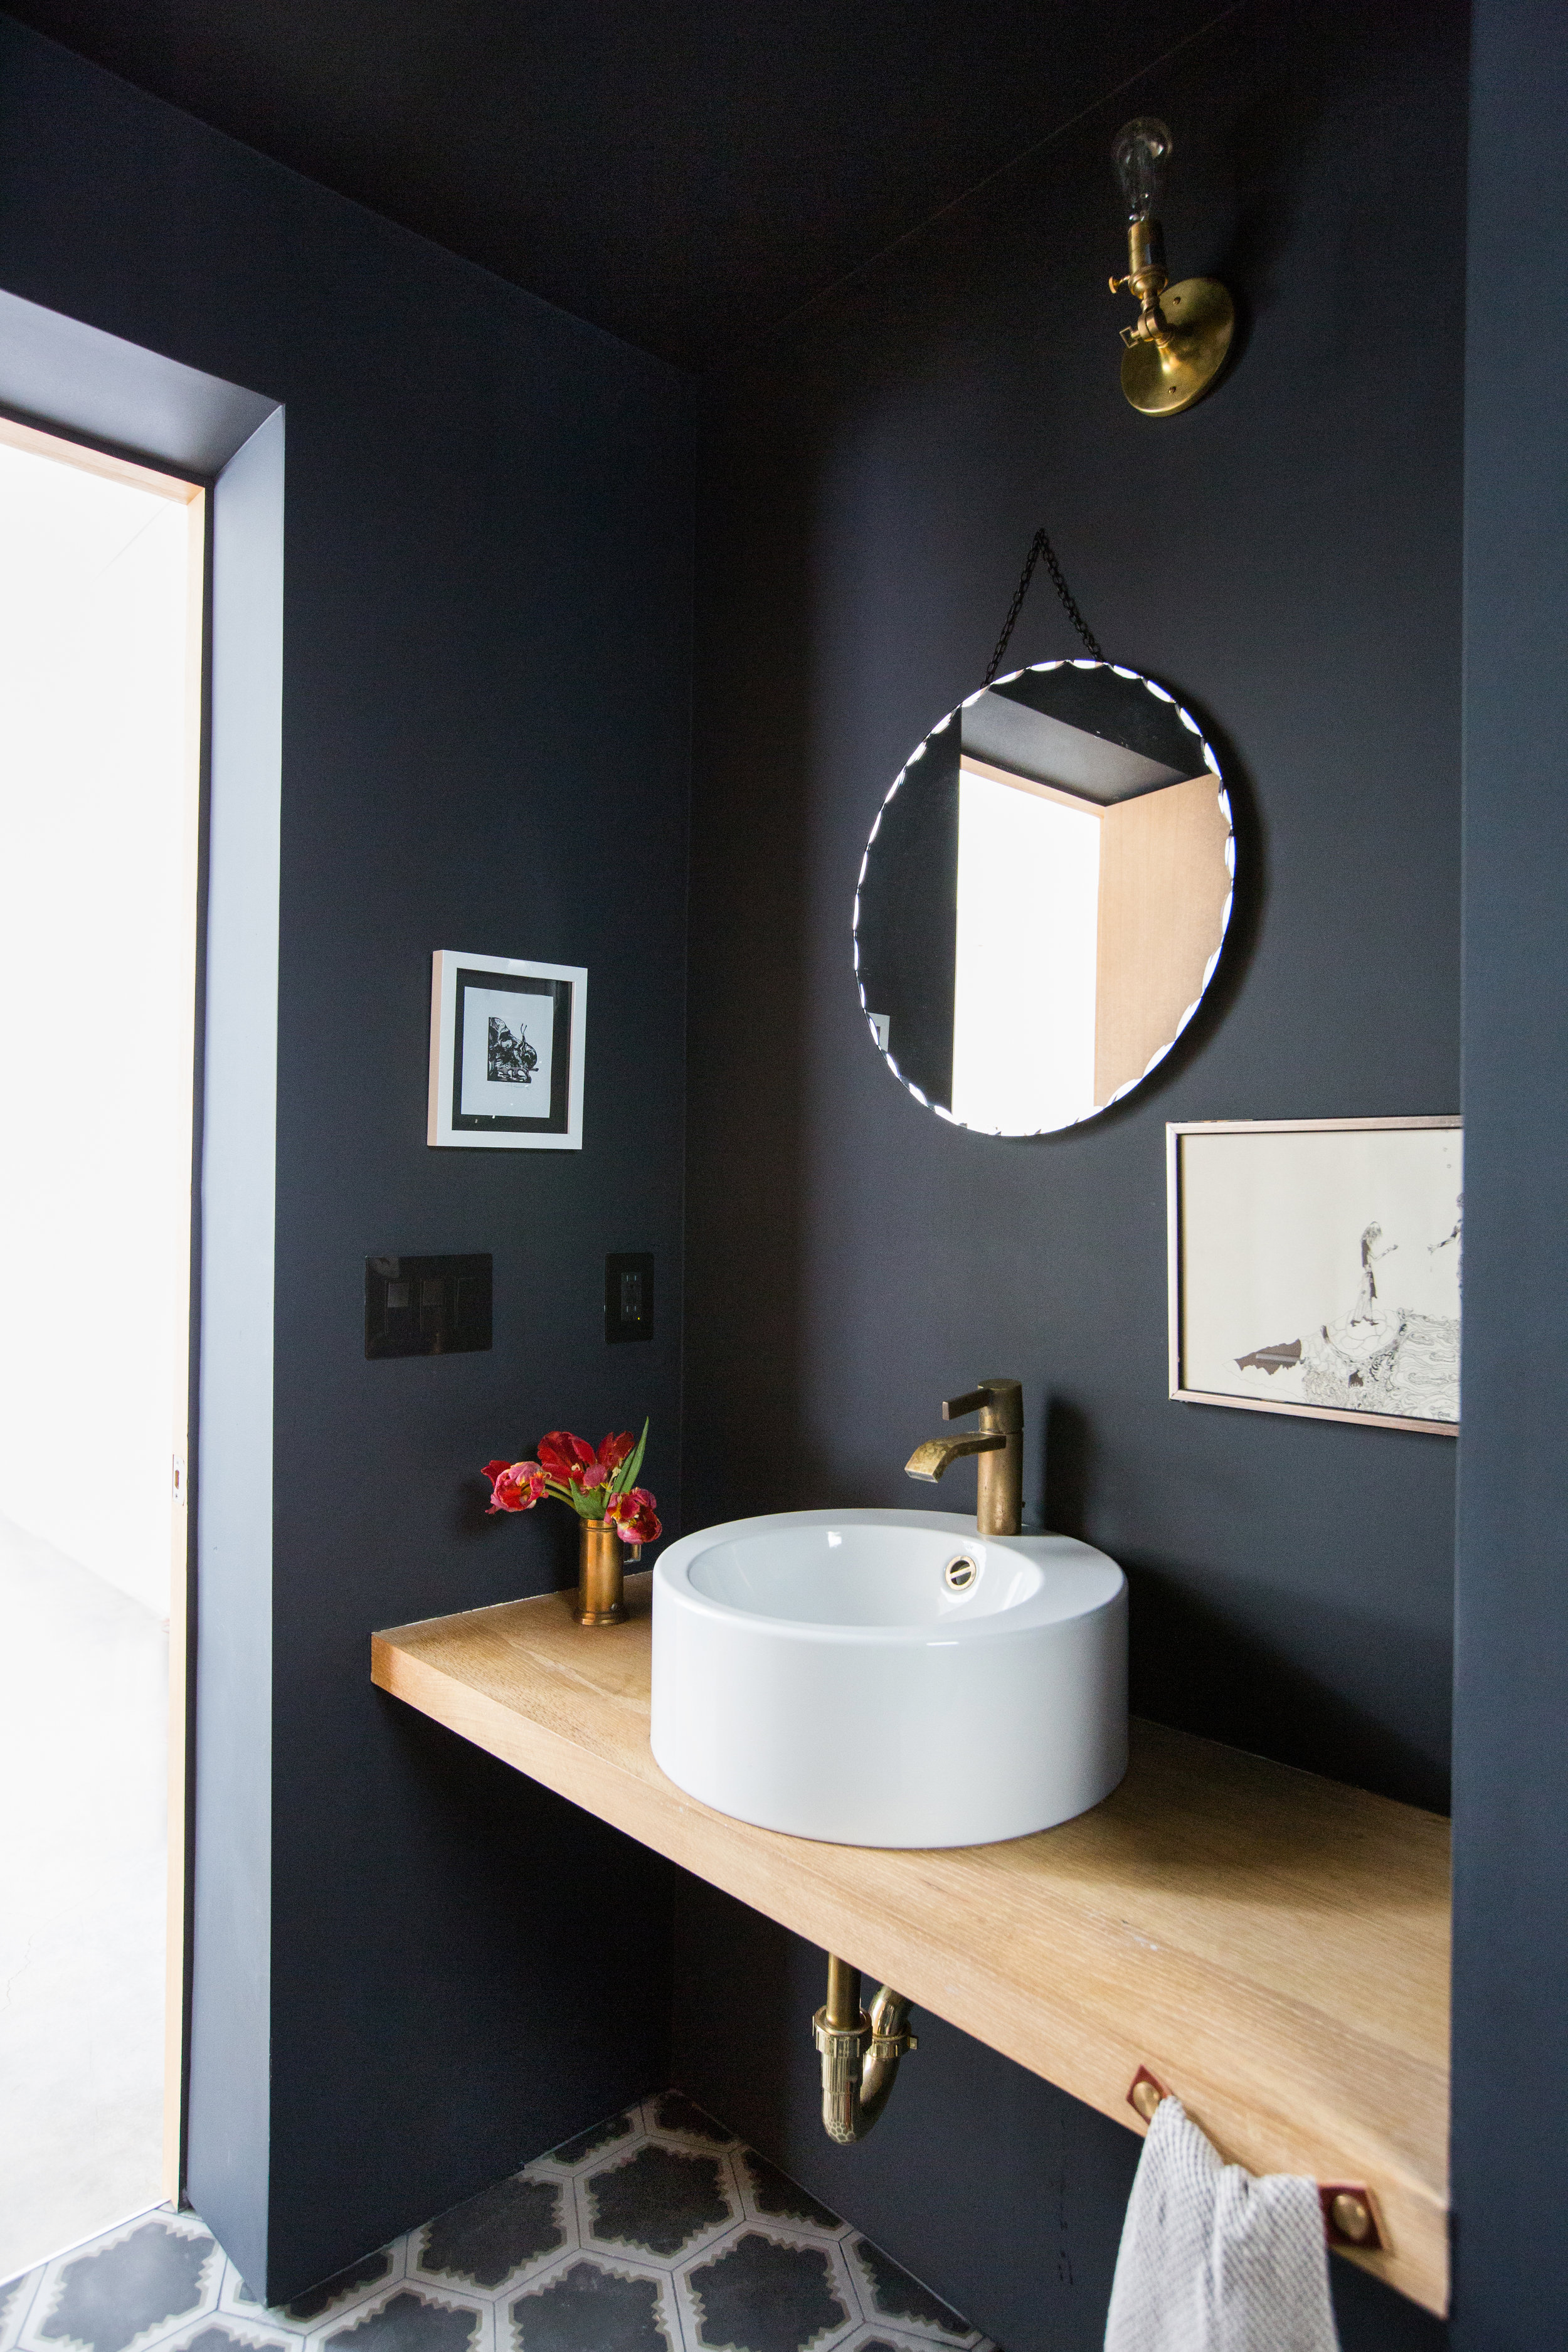 4 Bathroom Paint Colors Interior Designers Swear By | MyDomaine - by MEGAN BEAUCHAMPIt's no secret that paintcan transform a space. Whether you're looking to refresh your small powder roomor revamp your master bathroom, a fresh coat can quickly take a room of any size from drab and dreary to open and bright or moody and sophisticated. But, as anyone who's wandered down the paint aisle at their local hardware store can attest, choosing a paint color is easier said than done.When it comes to selecting the right bathroom paint color, there are a number of factors to consider that are specific to that space, particularly if you're freshening up a particularly small bathroom. Will a dark hue make the room feel sophisticated and modern or cramped and cave-like? Will a crisp shade of whitelook too cold and stark in a room without windows? Because paint colors can be so hard to envision, naturally, we turned to the pros to narrow down our swatch selection.Keep scrolling to find out why interiors designers call these the